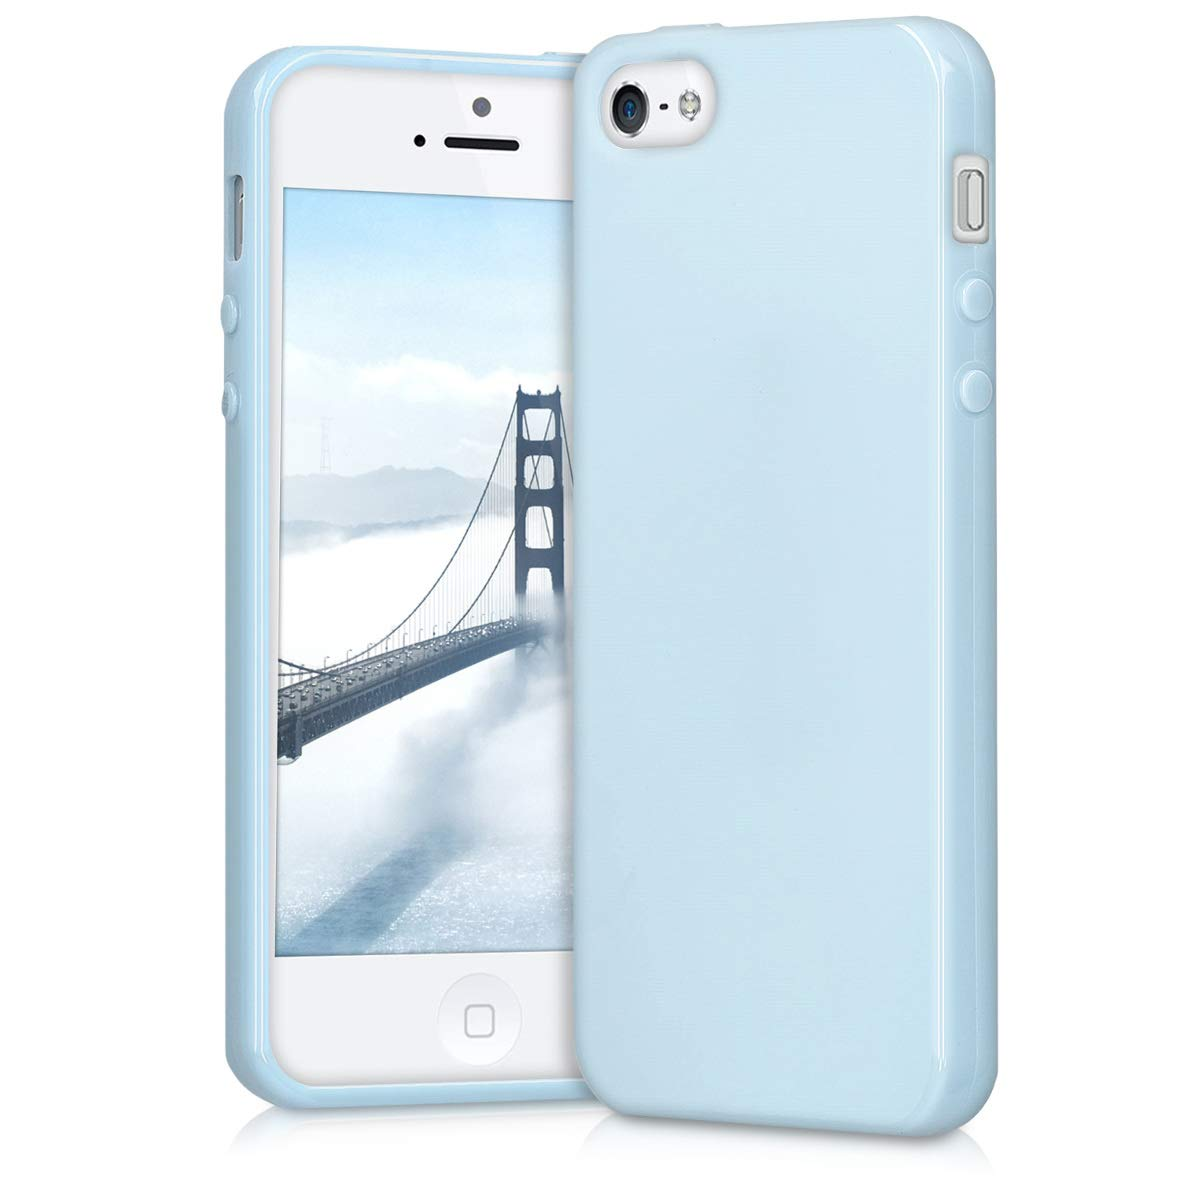 kwmobile TPU Silicone Case for Apple iPhone SE / 5 / 5S - Soft Flexible Shock Absorbent Protective Phone Cover - Light Blue Matte